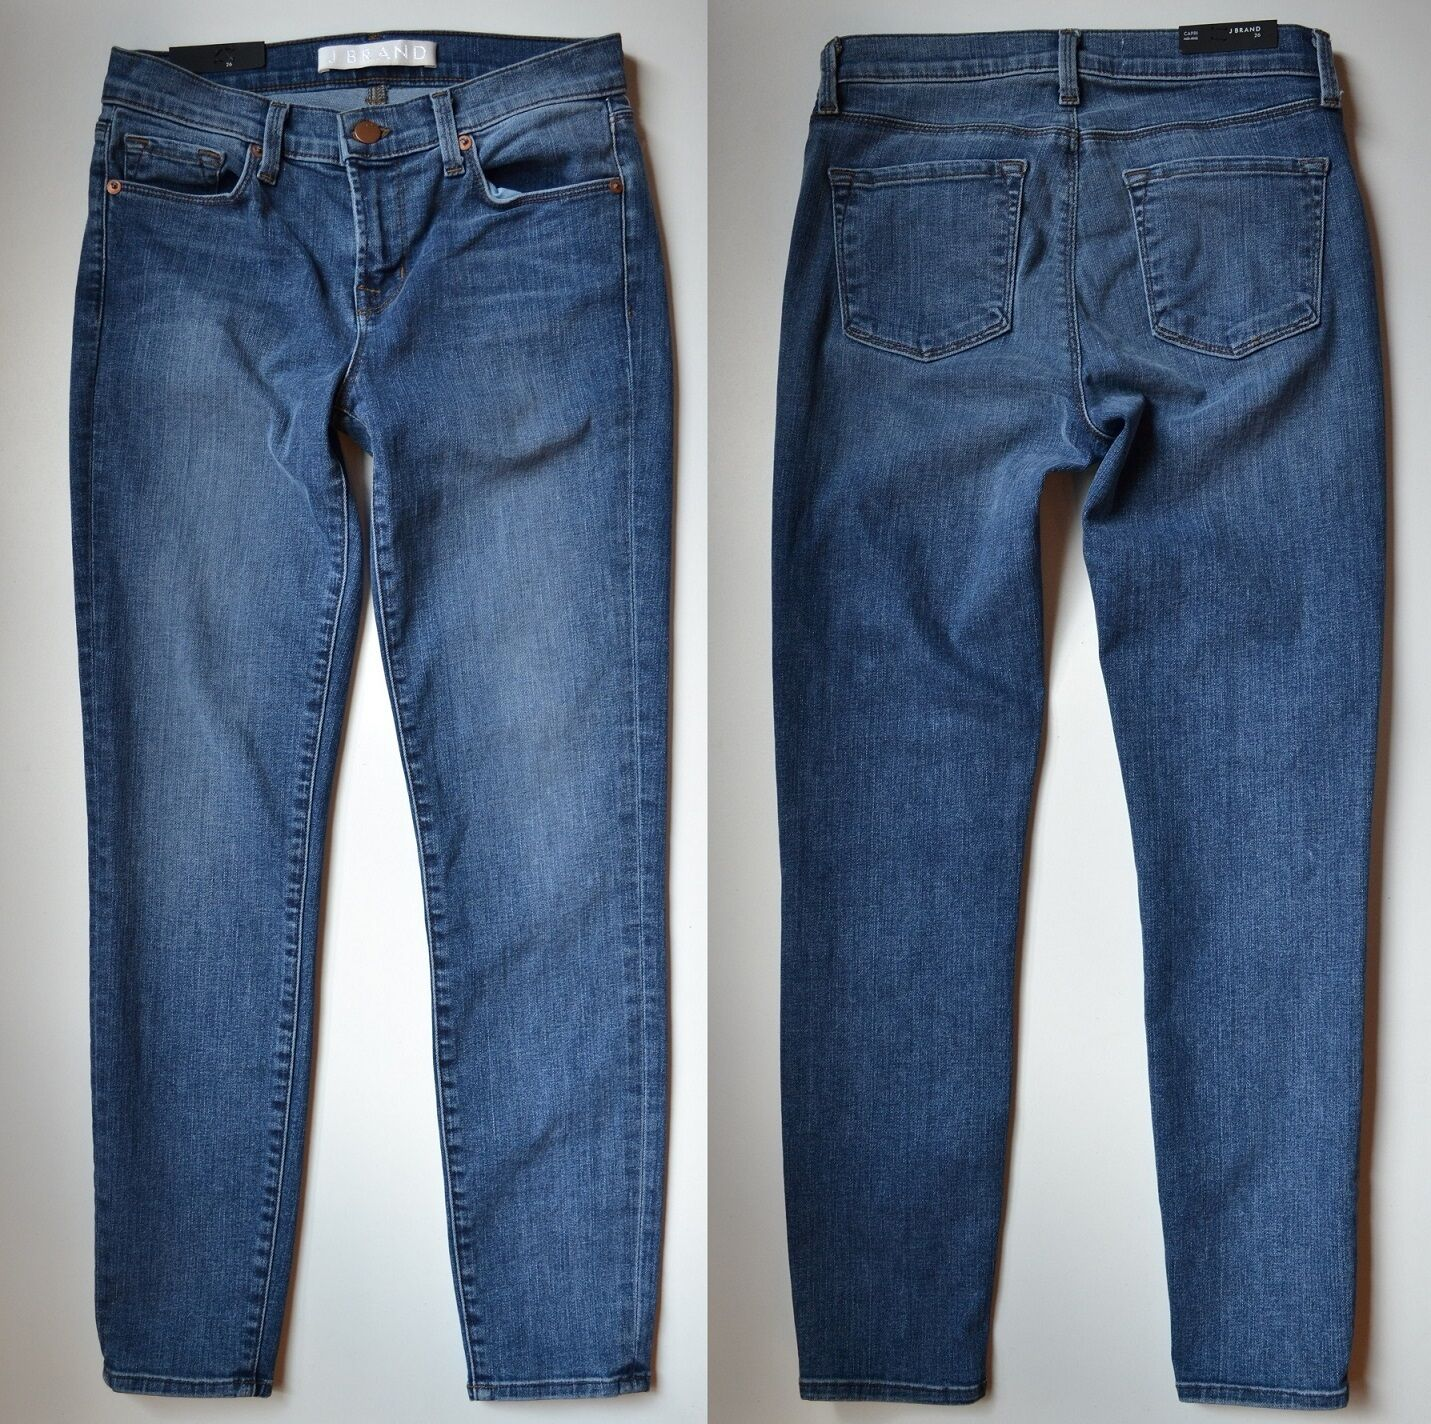 NWOT J Brand 835 Mid-rise Capri Skinny Cropped Jeans in bluee